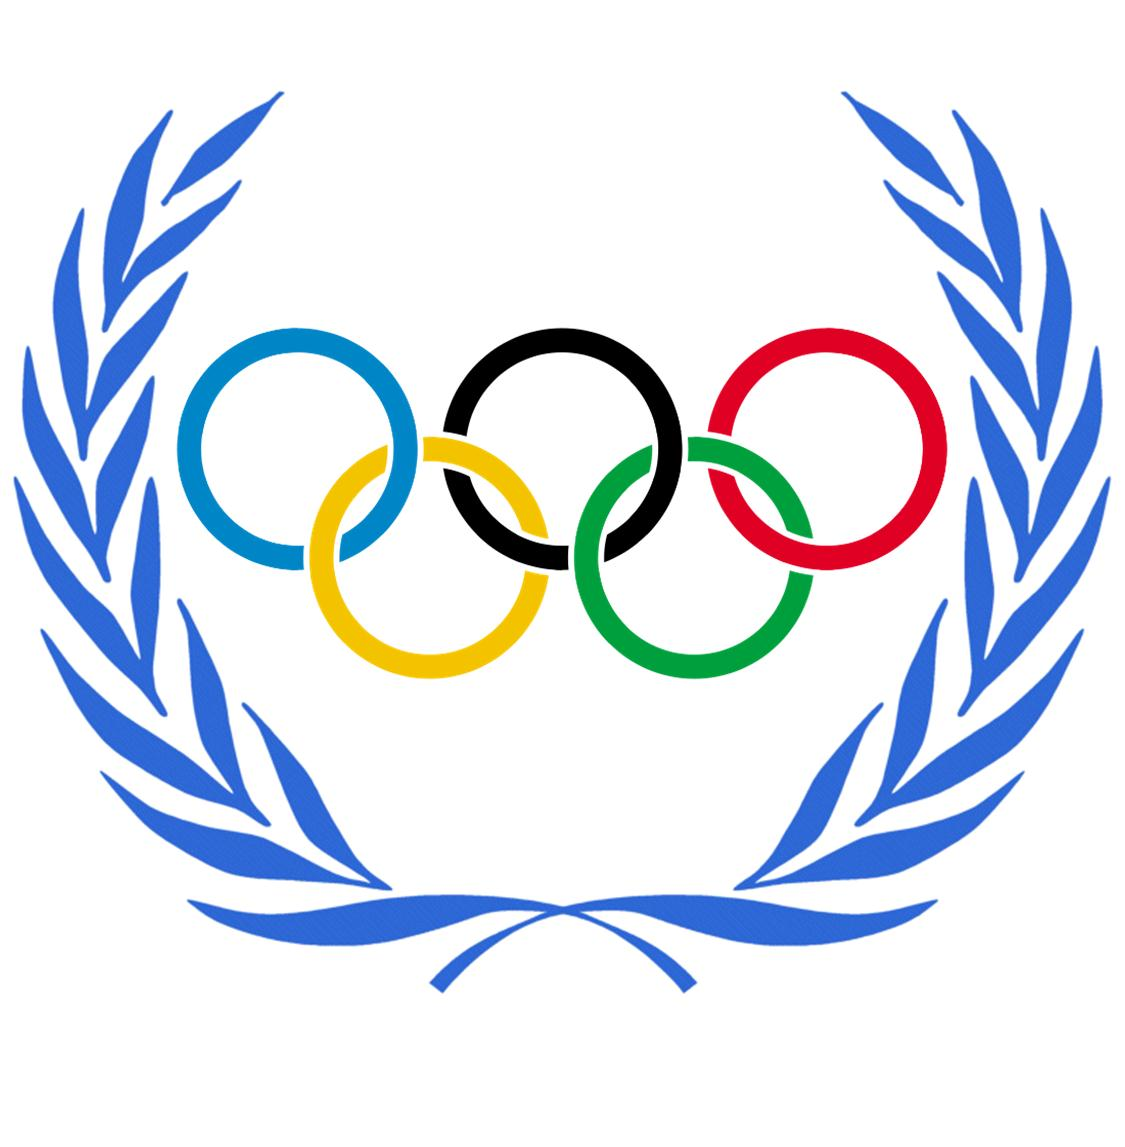 The Greek Olympic Games